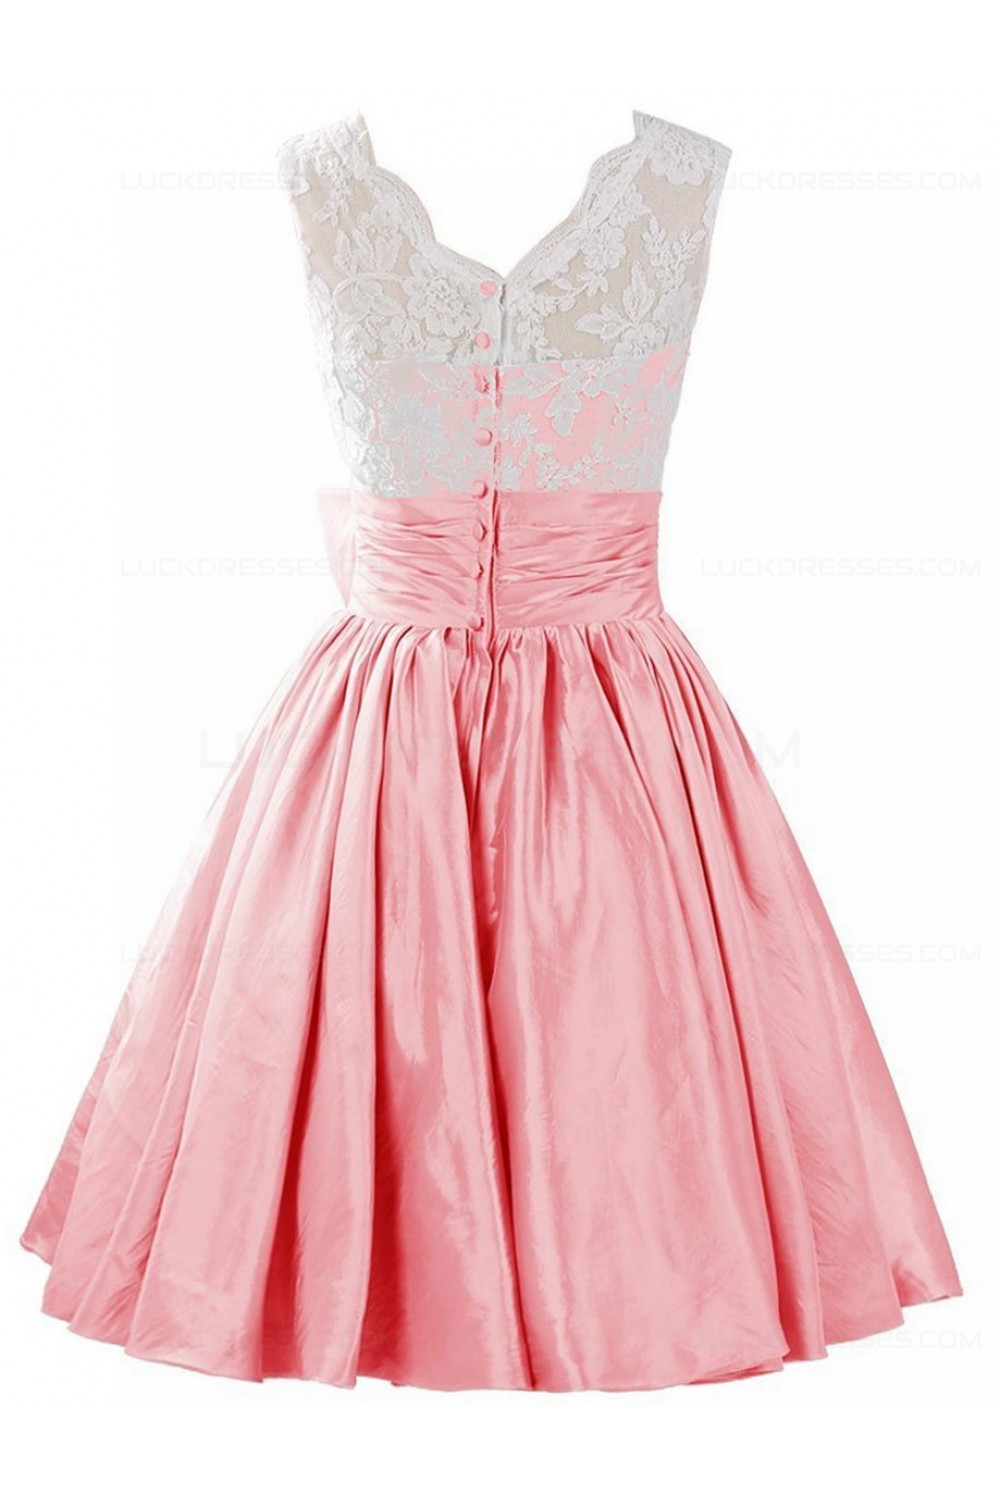 aline lace short prom dresses party evening gowns 3020409